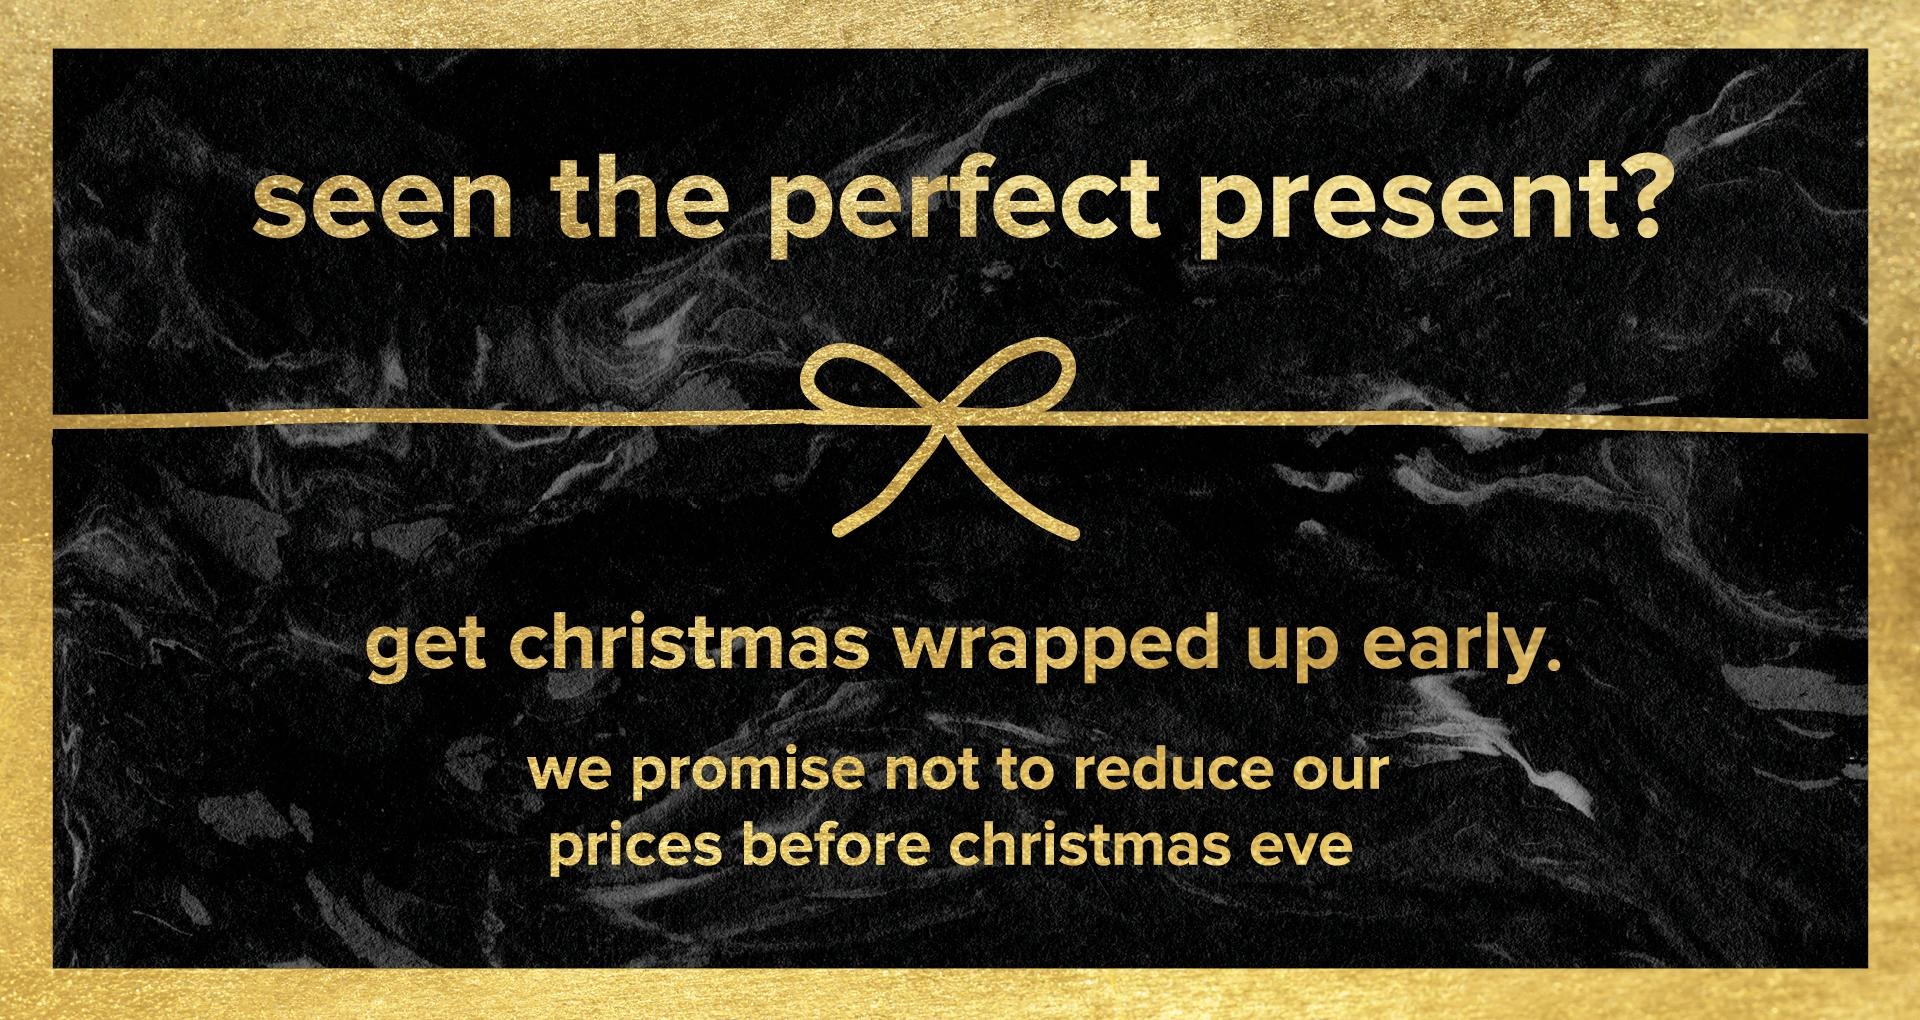 Seen the perfect present? We promise not to reduce our prices before christmas eve